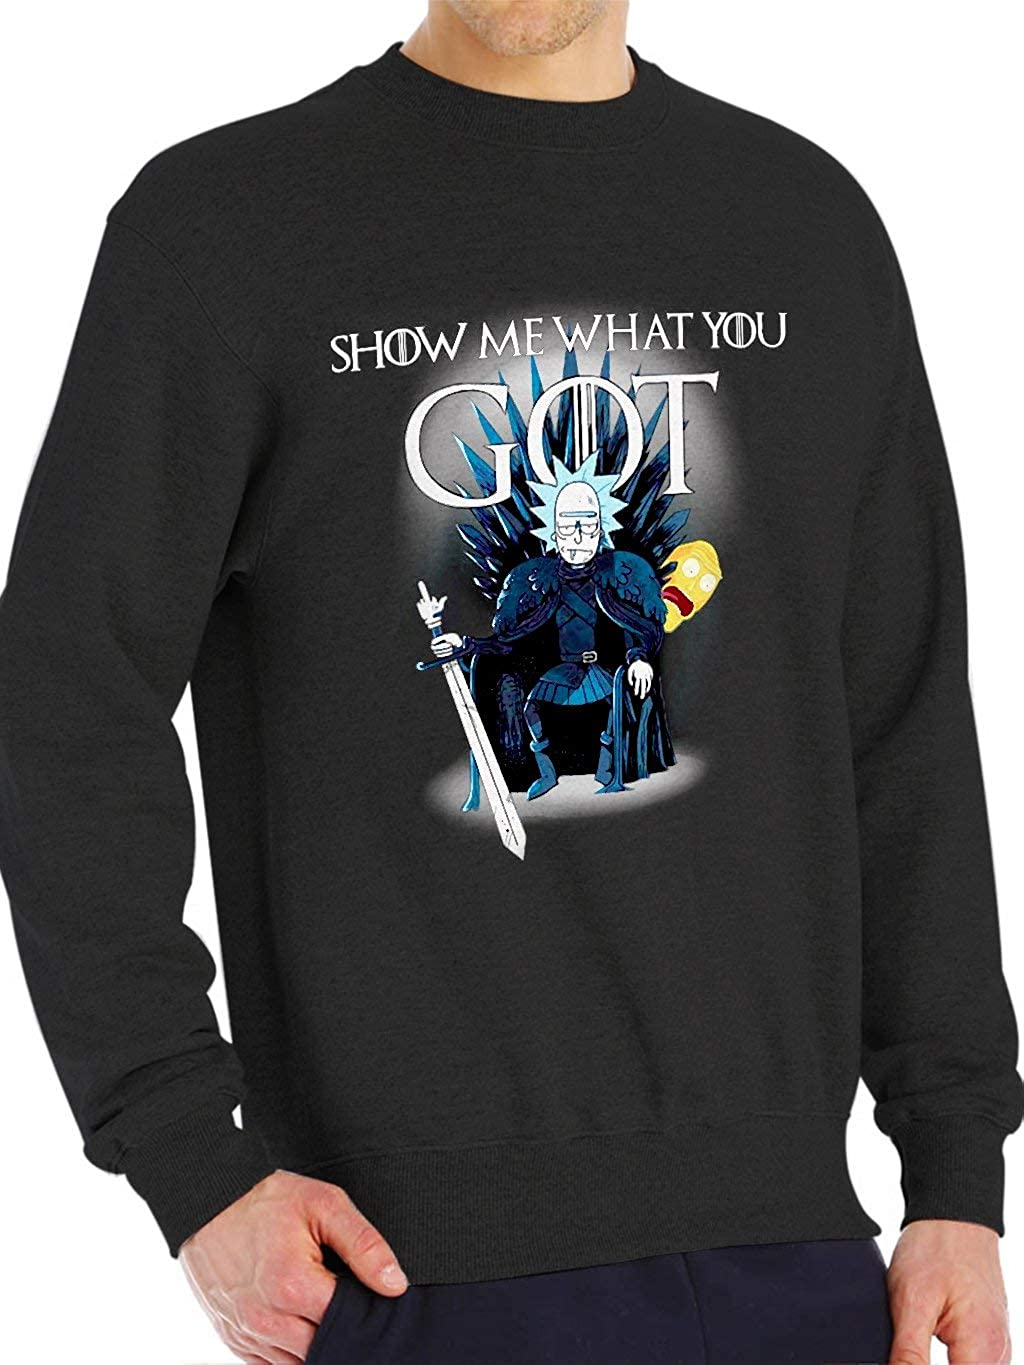 Show Me What You Got Funny Vintage Trending Awesome Gift